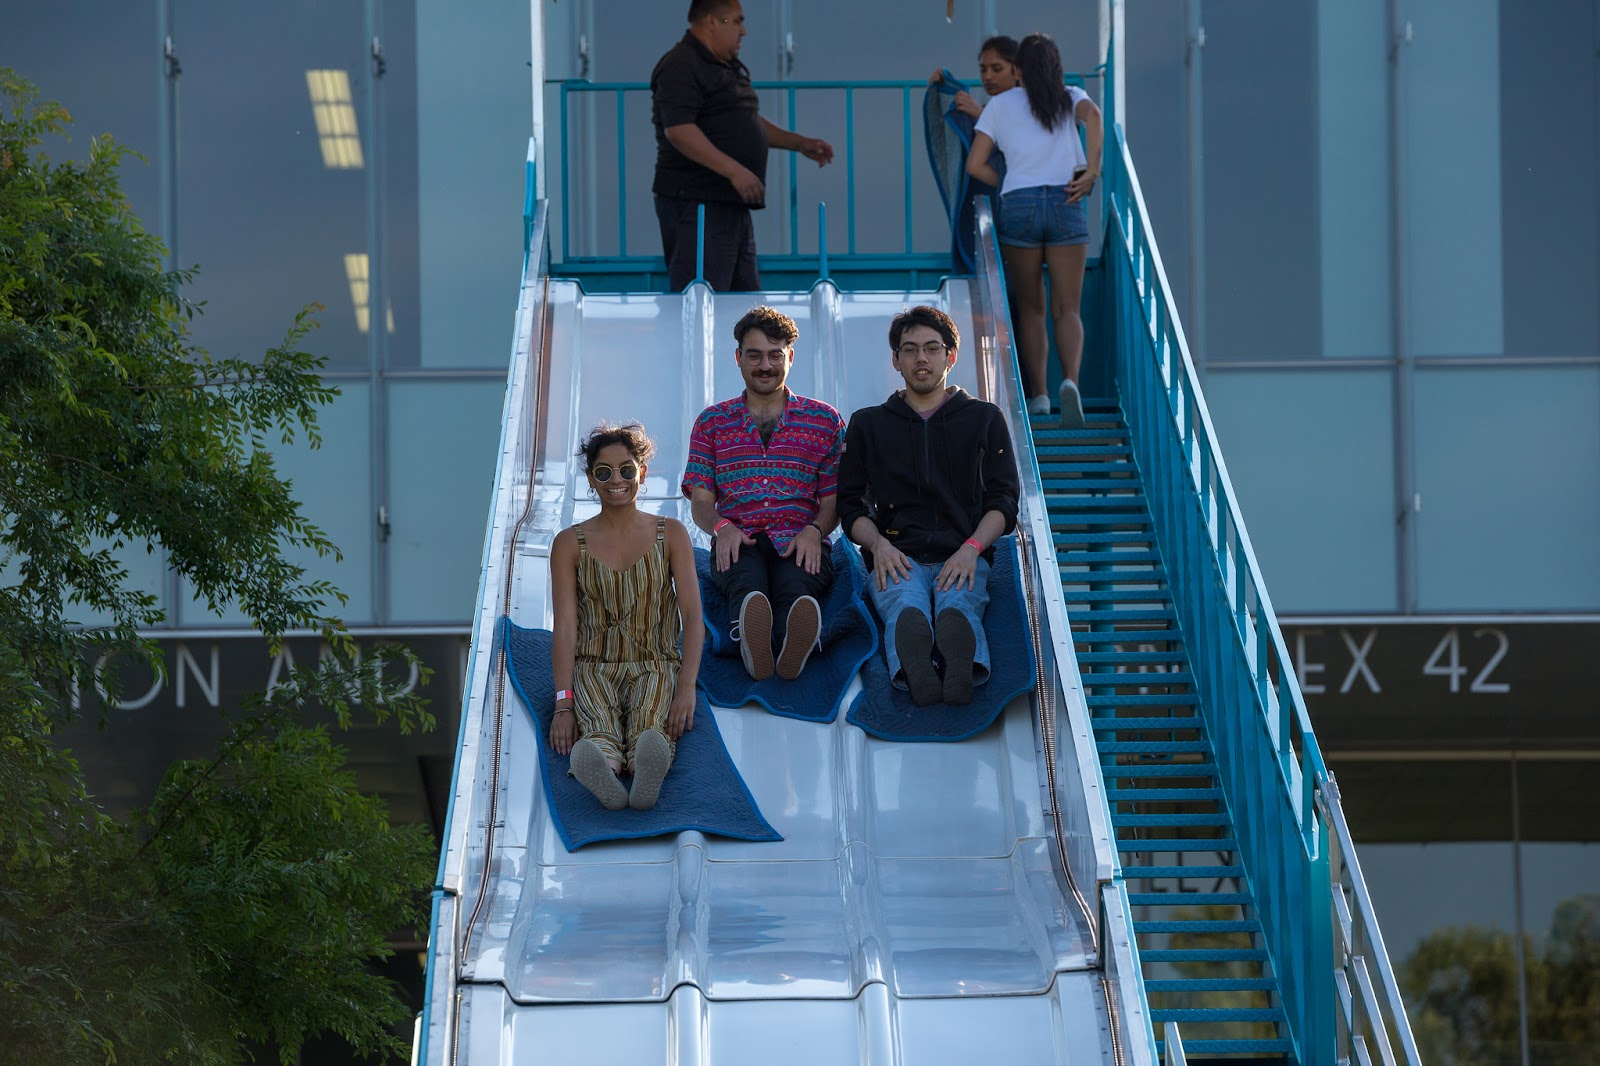 Three students race down the giant slide to see who will reach the bottom first